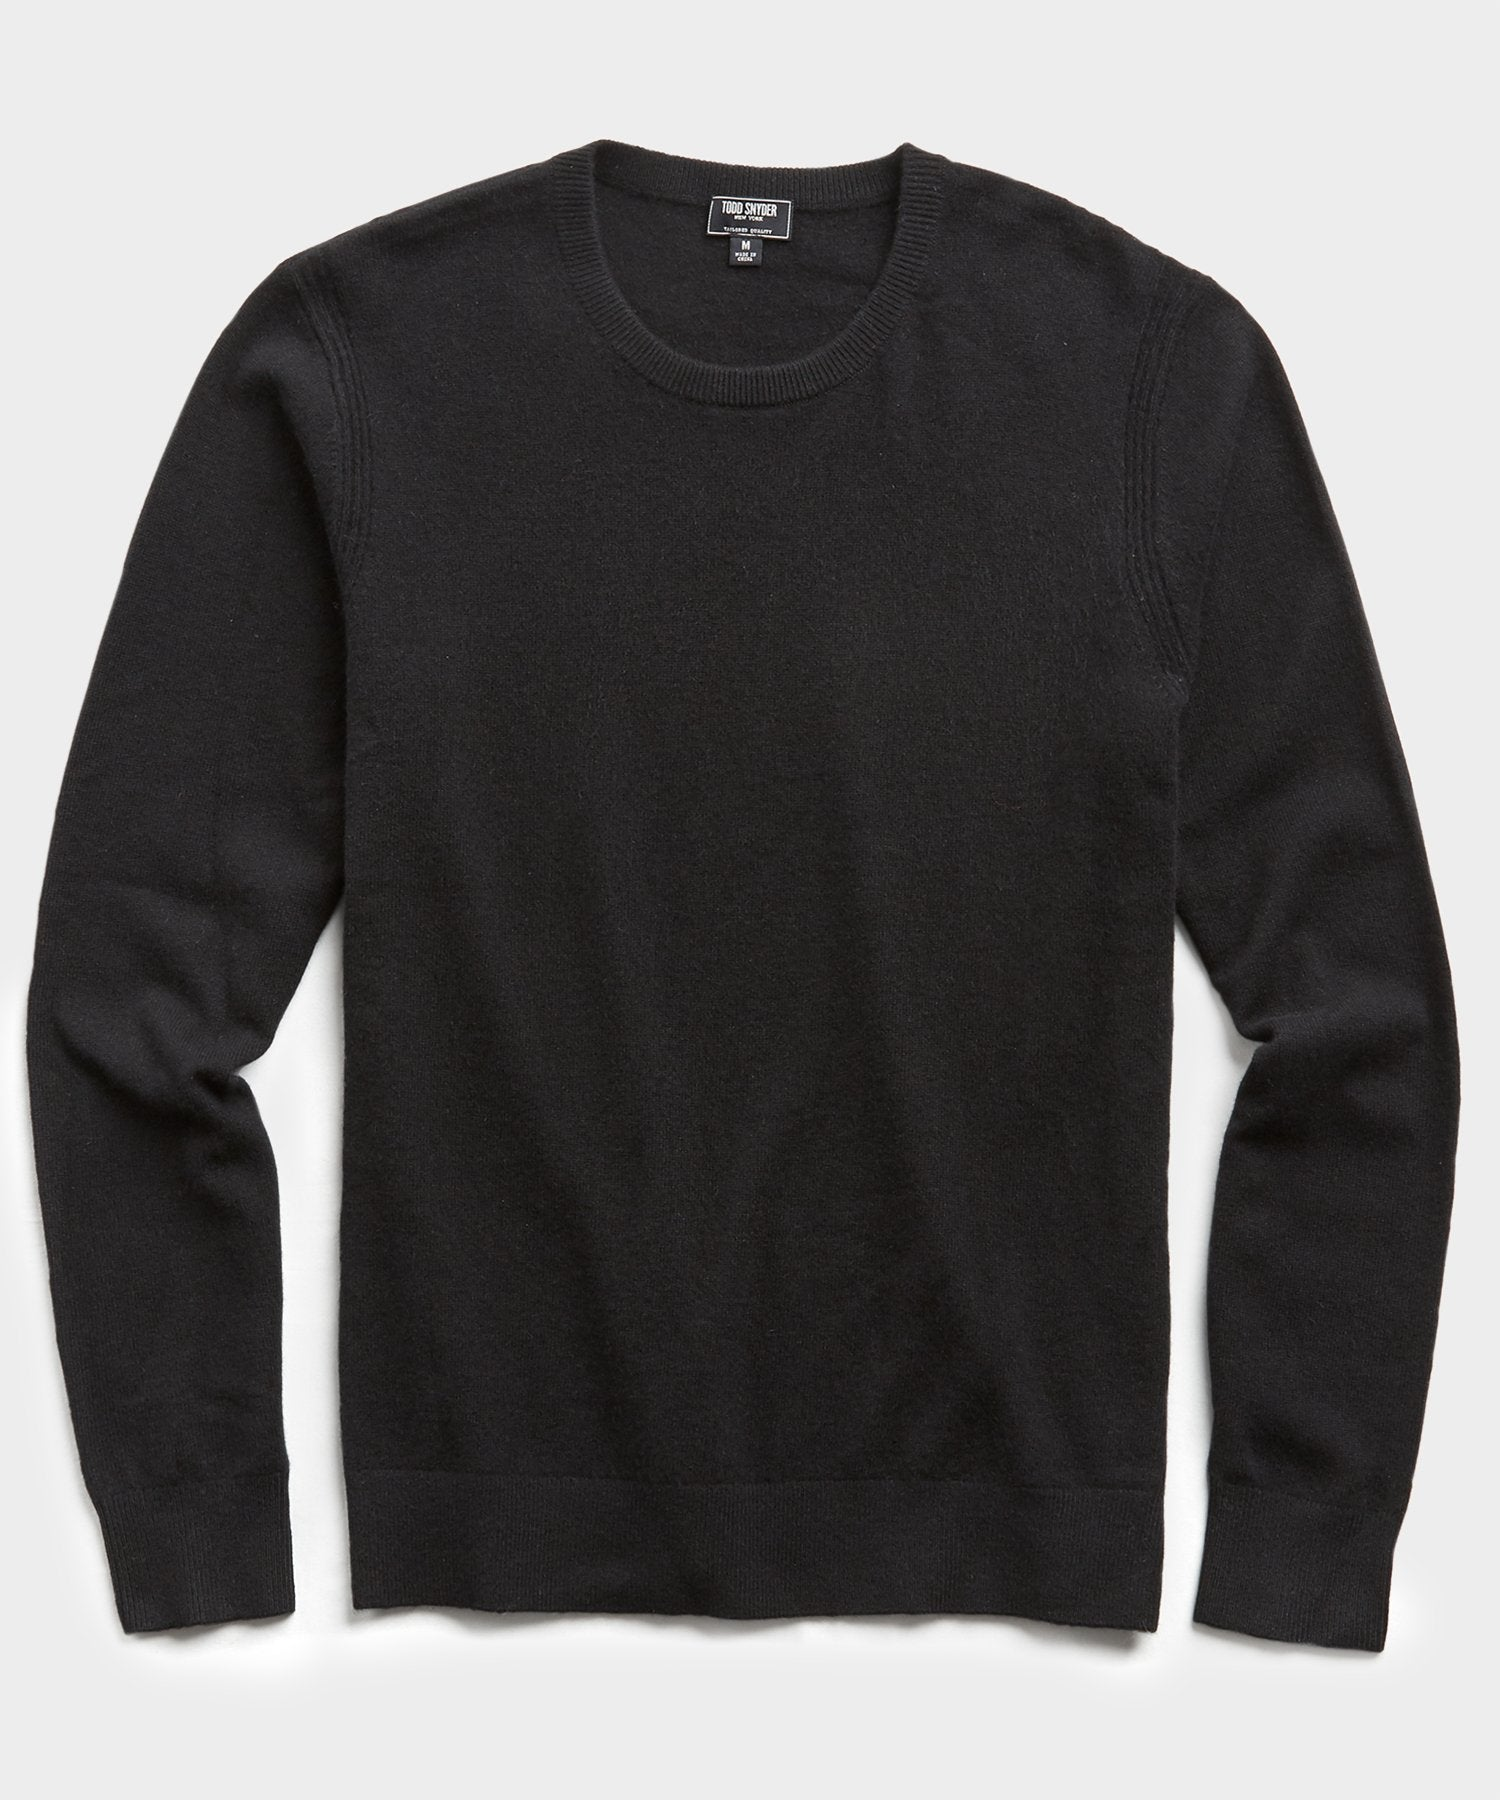 Cashmere Crewneck in Black